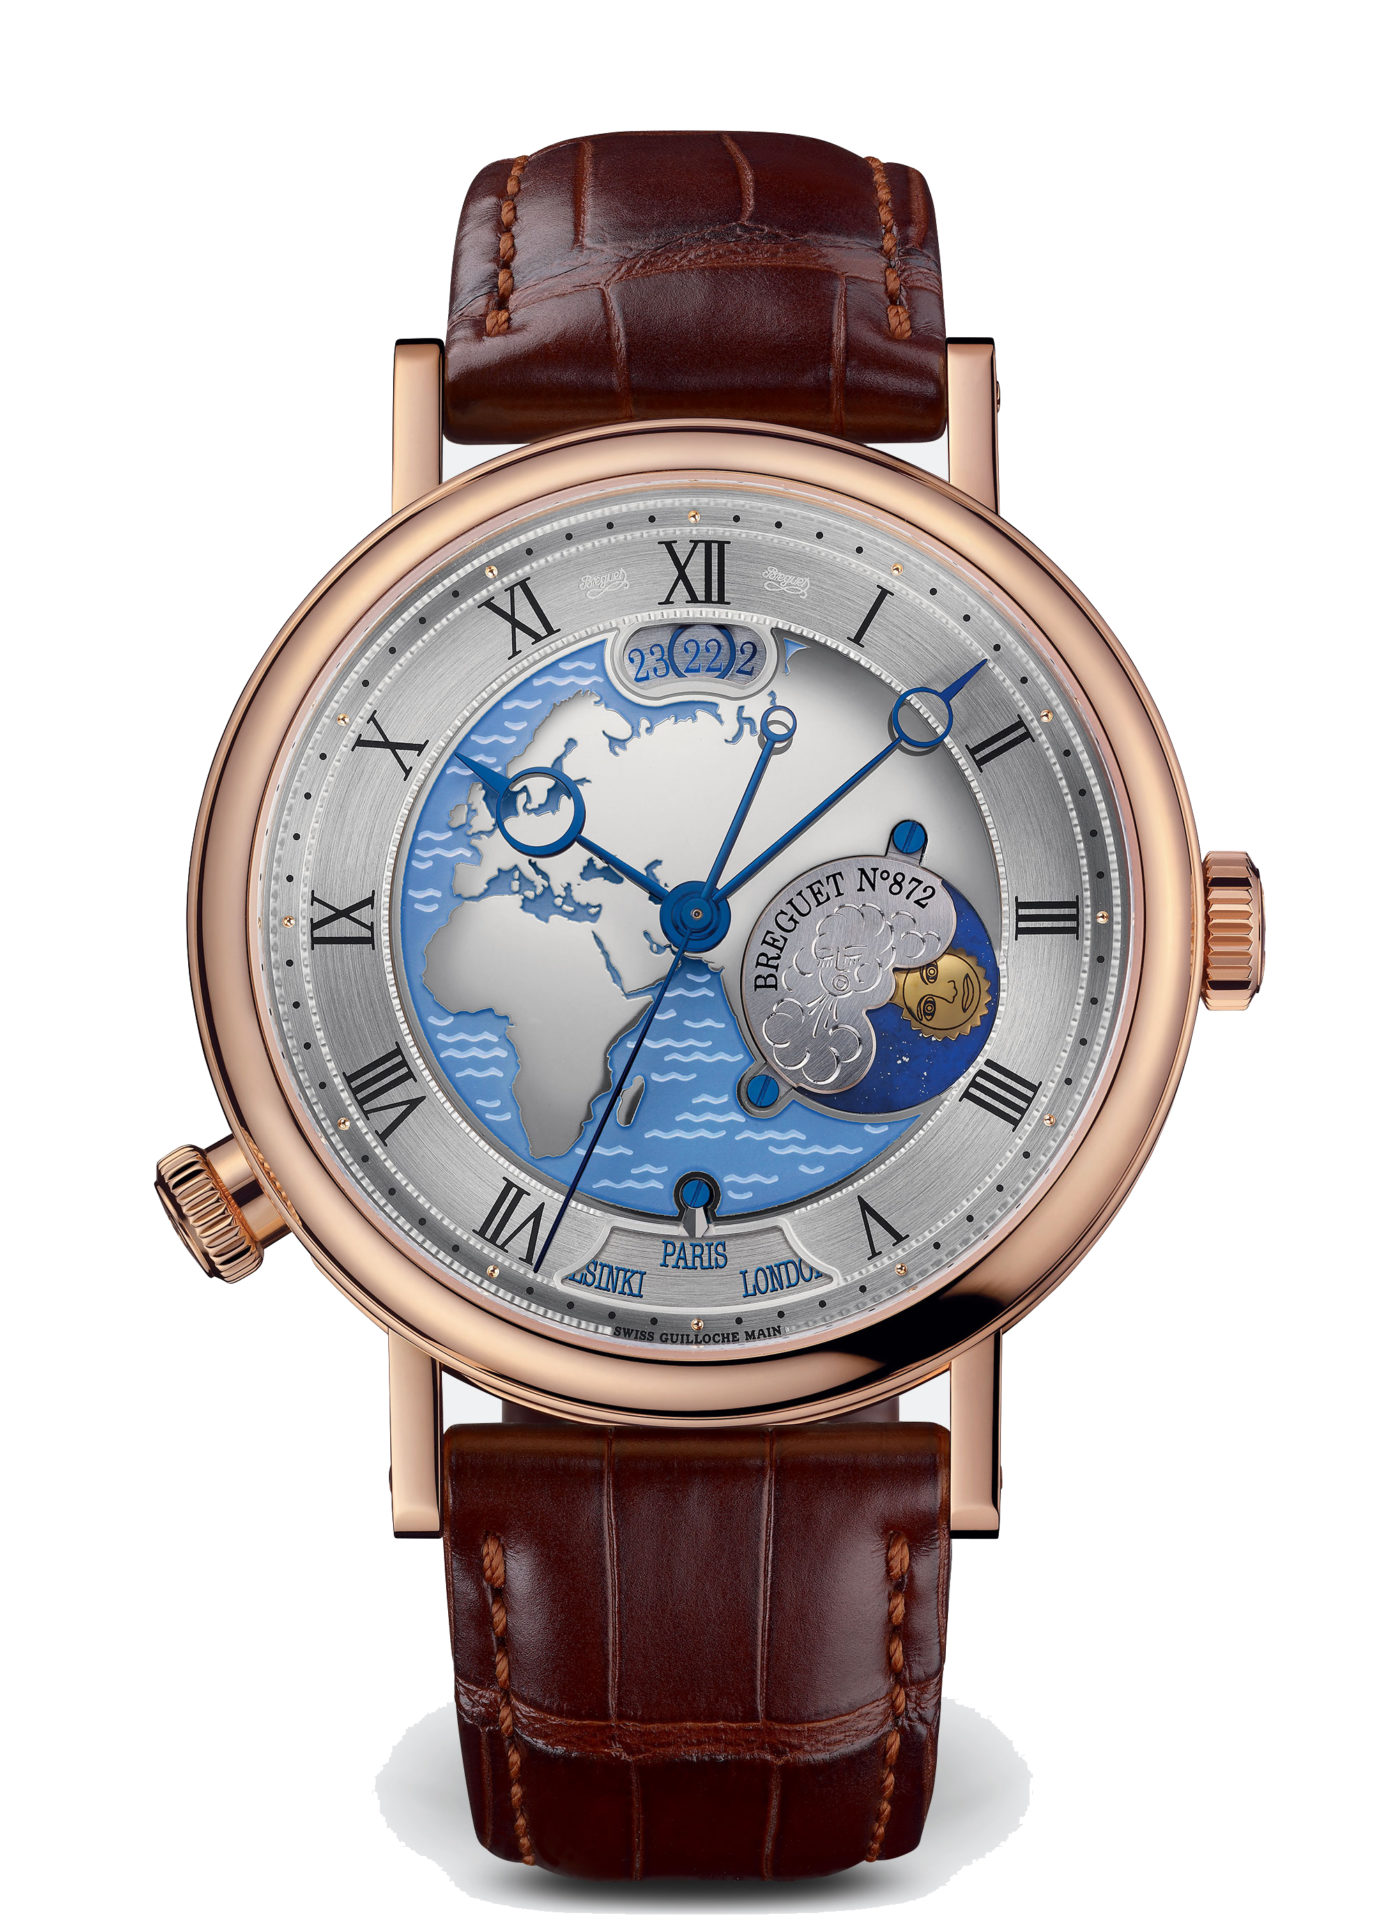 Breguet-Classique-Hora-Mundi-5717-Hall-of-Time-5717br-eu-9zu